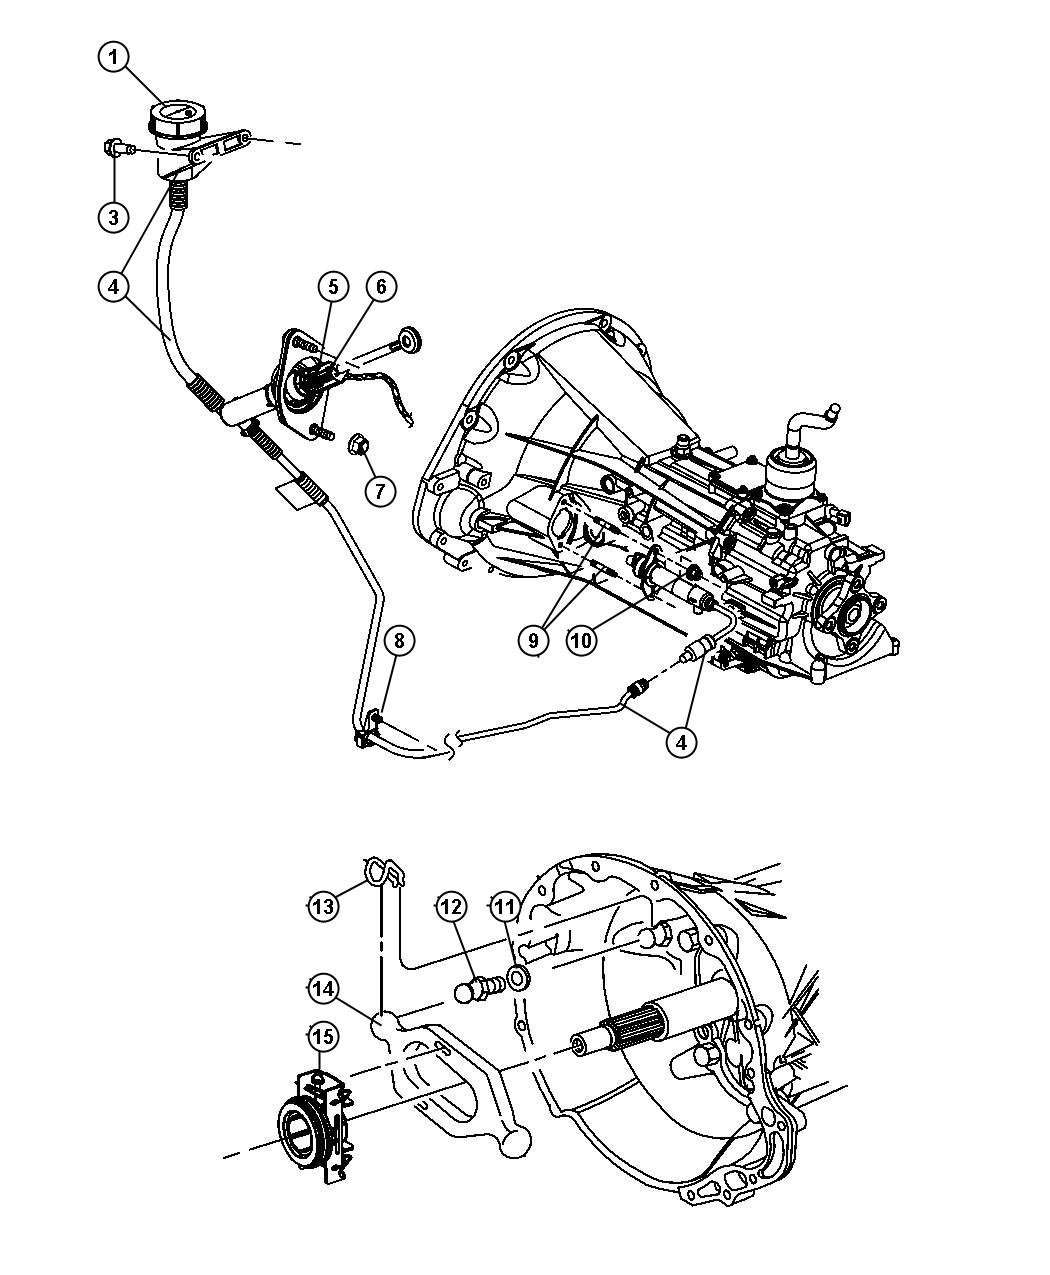 42le A606 42rle together with 000003WP further Exploded View furthermore Dodge Transmission Parts c 5469 also Bolts To Install Exhaust Manifold On 2002 Dodge Dakota 3 9 4x4. on chrysler 904 transmission